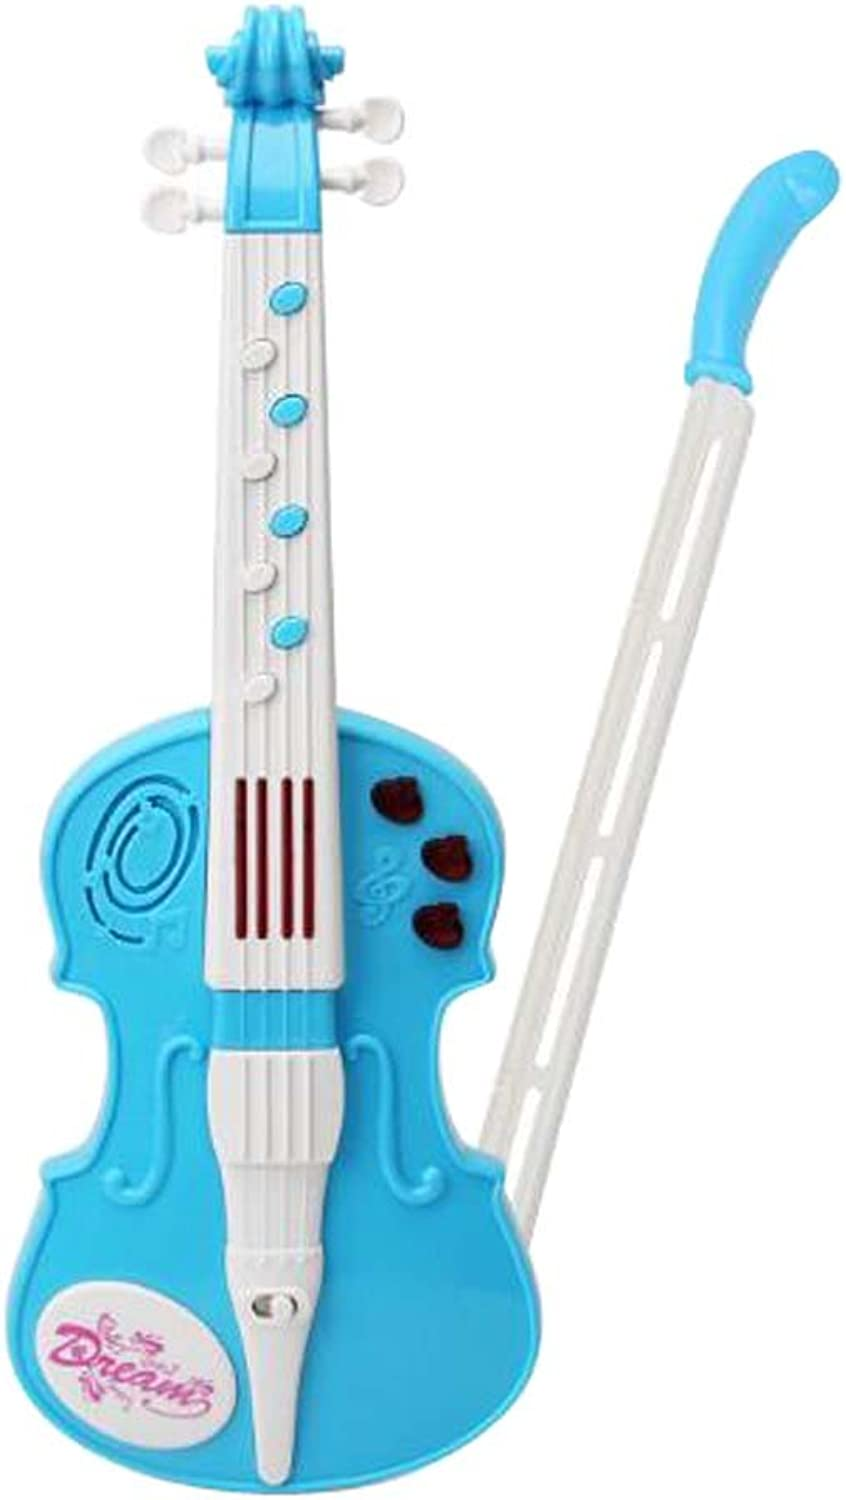 Kids Playable Violin Beginner Accordion Musical Toy Instrument,36x13 CM A